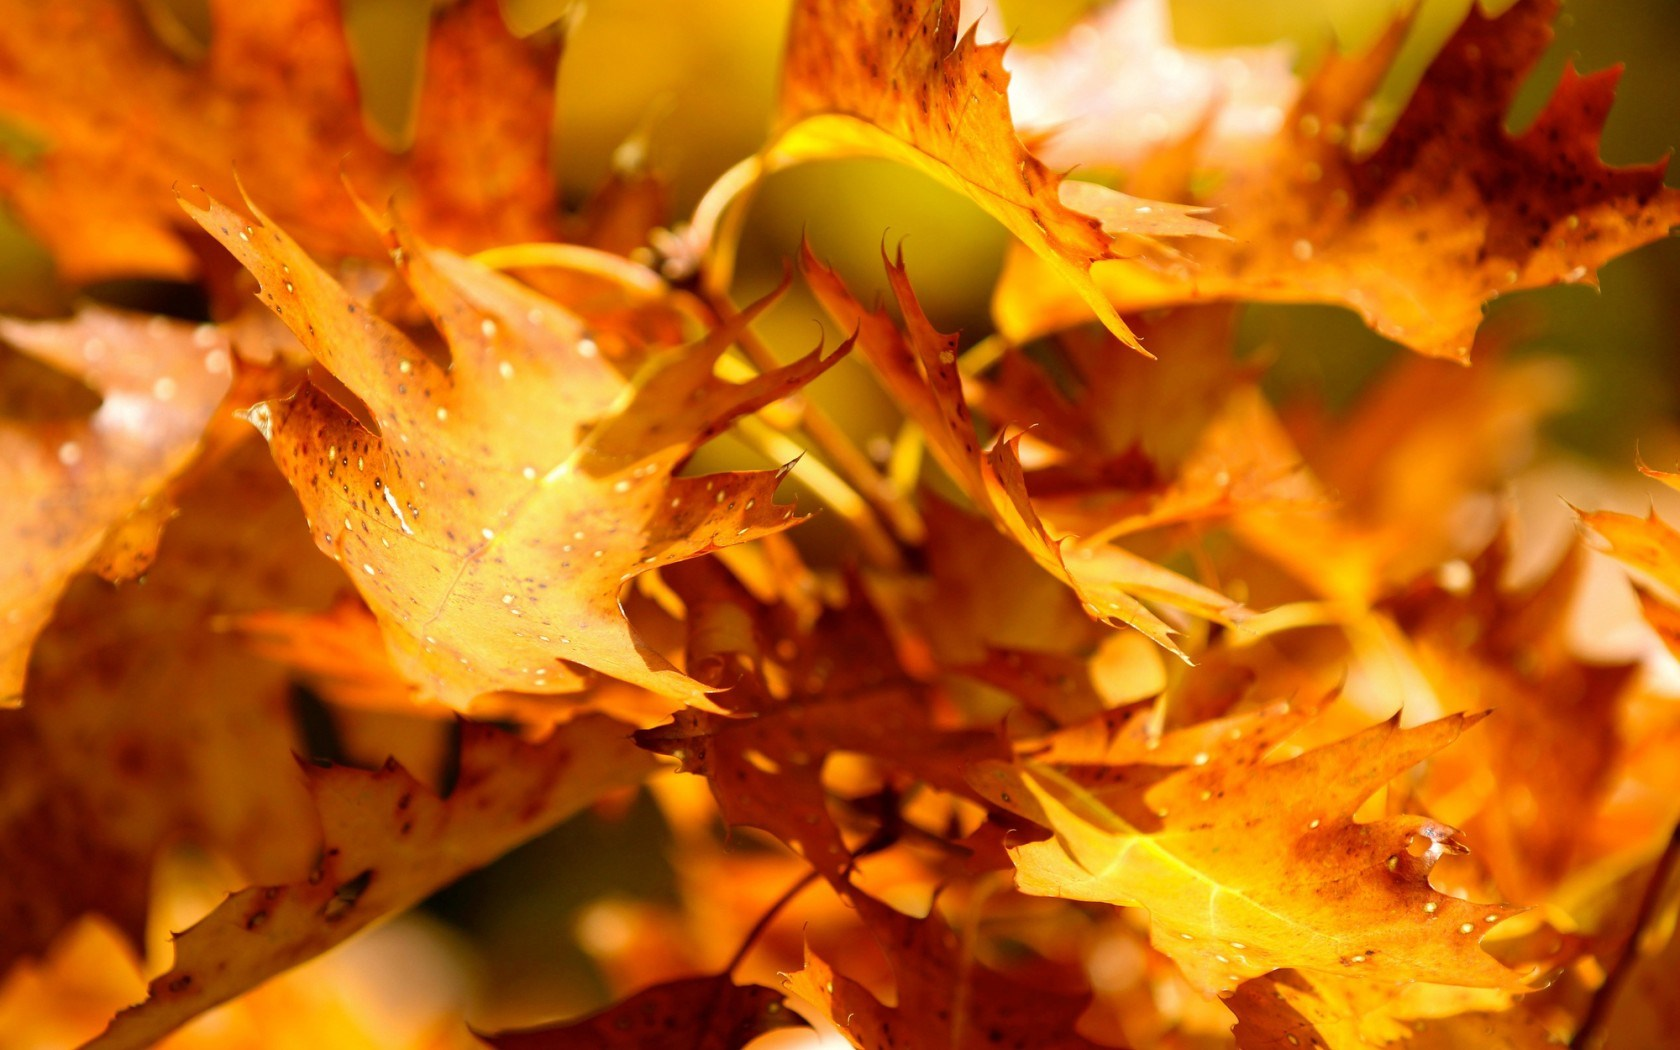 Live Wallpaper Fall Leaves Autumn Yellow Leaves Hd Desktop Wallpapers 4k Hd